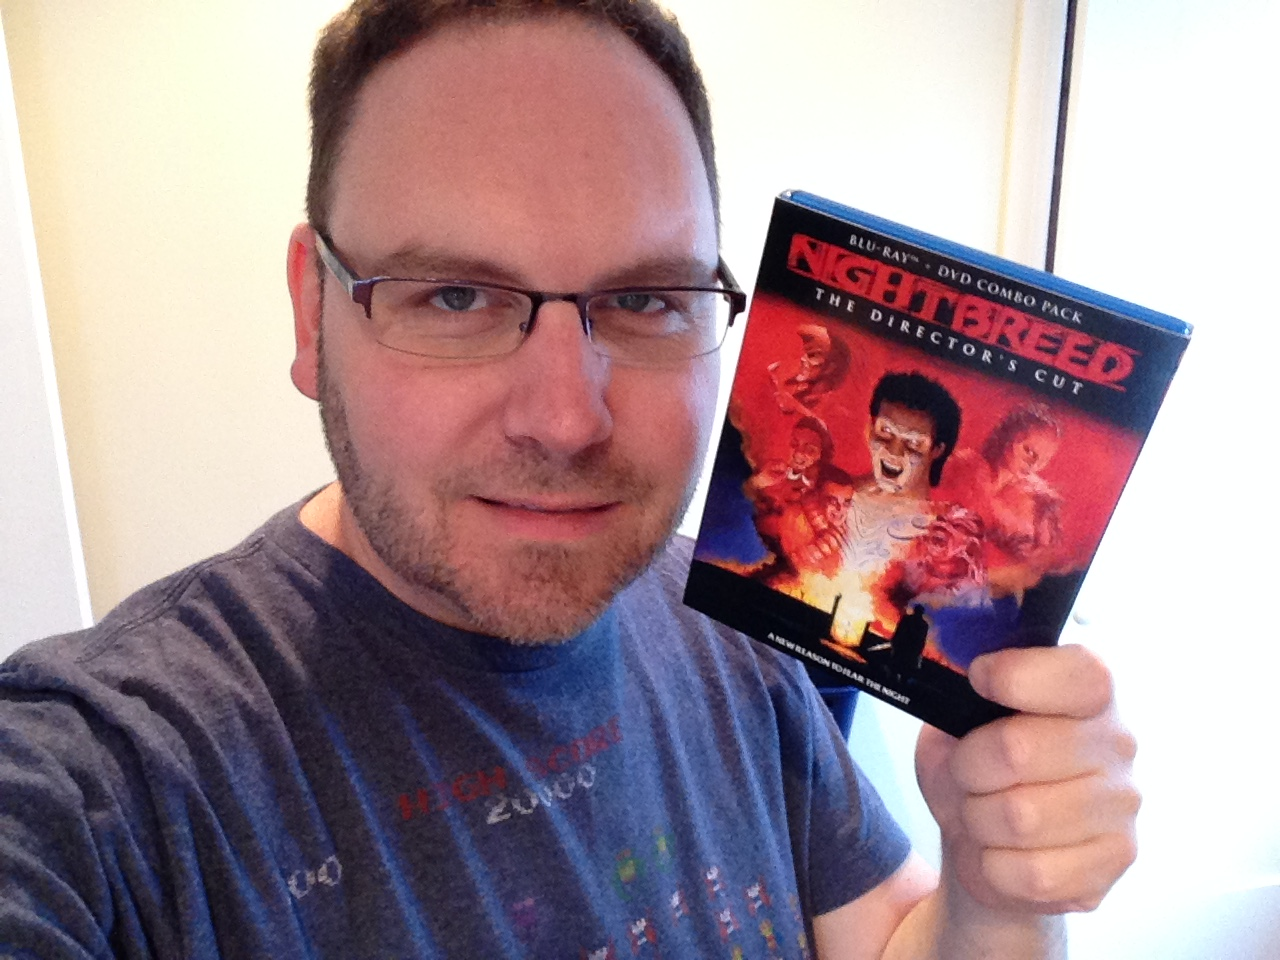 nightbreed the directors cut bluray review coinop tv